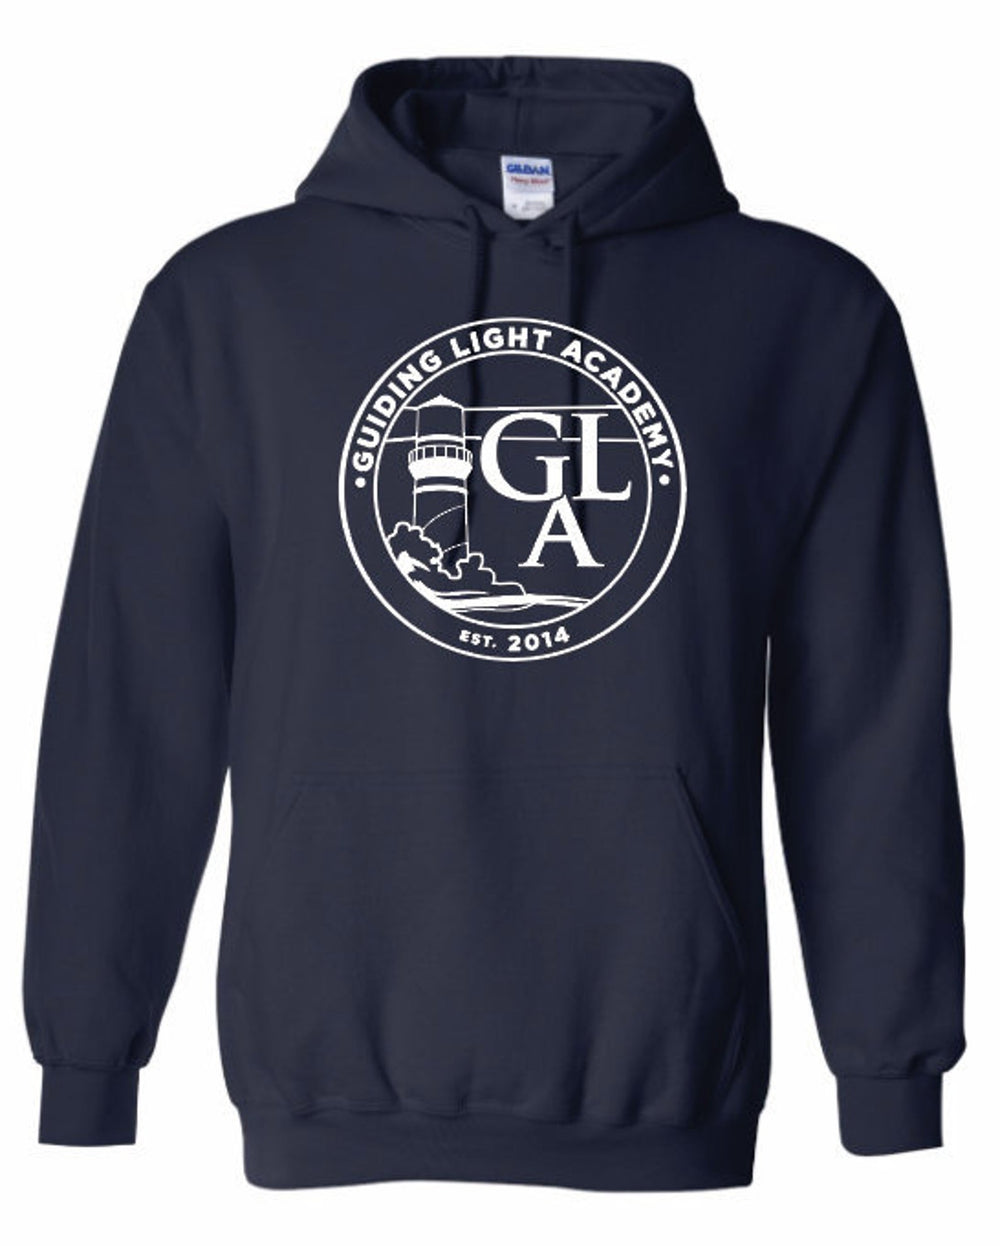 Guiding Light Academy - Gildan Hoodie w/ Circle Full Front Impression